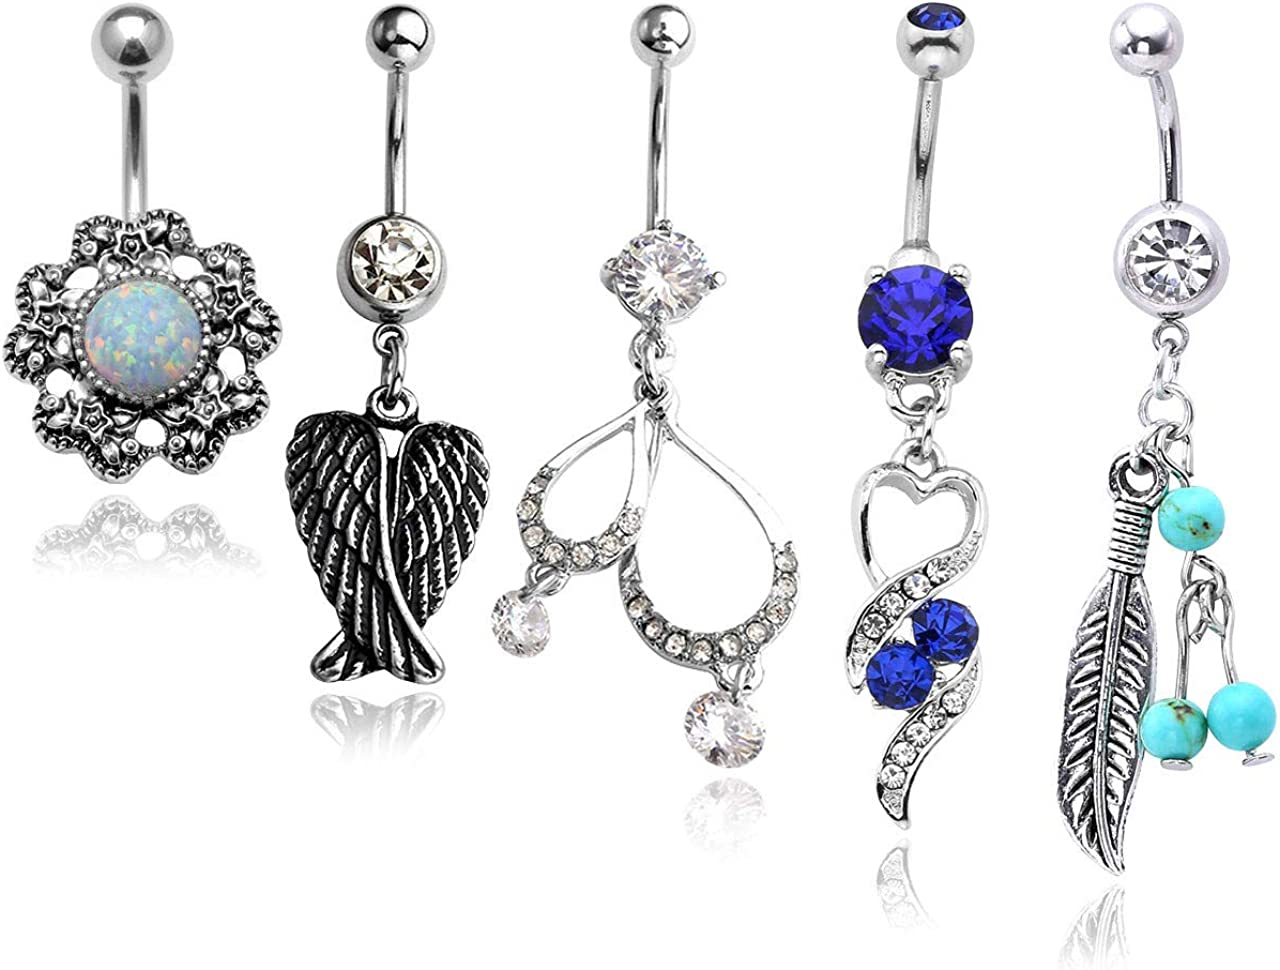 PiercingJ 5pcs 14G Stainless Steel Dangle Belly Button Rings for Women Crystal Curved Barbell Navel Rings Body Piercing Jewelry